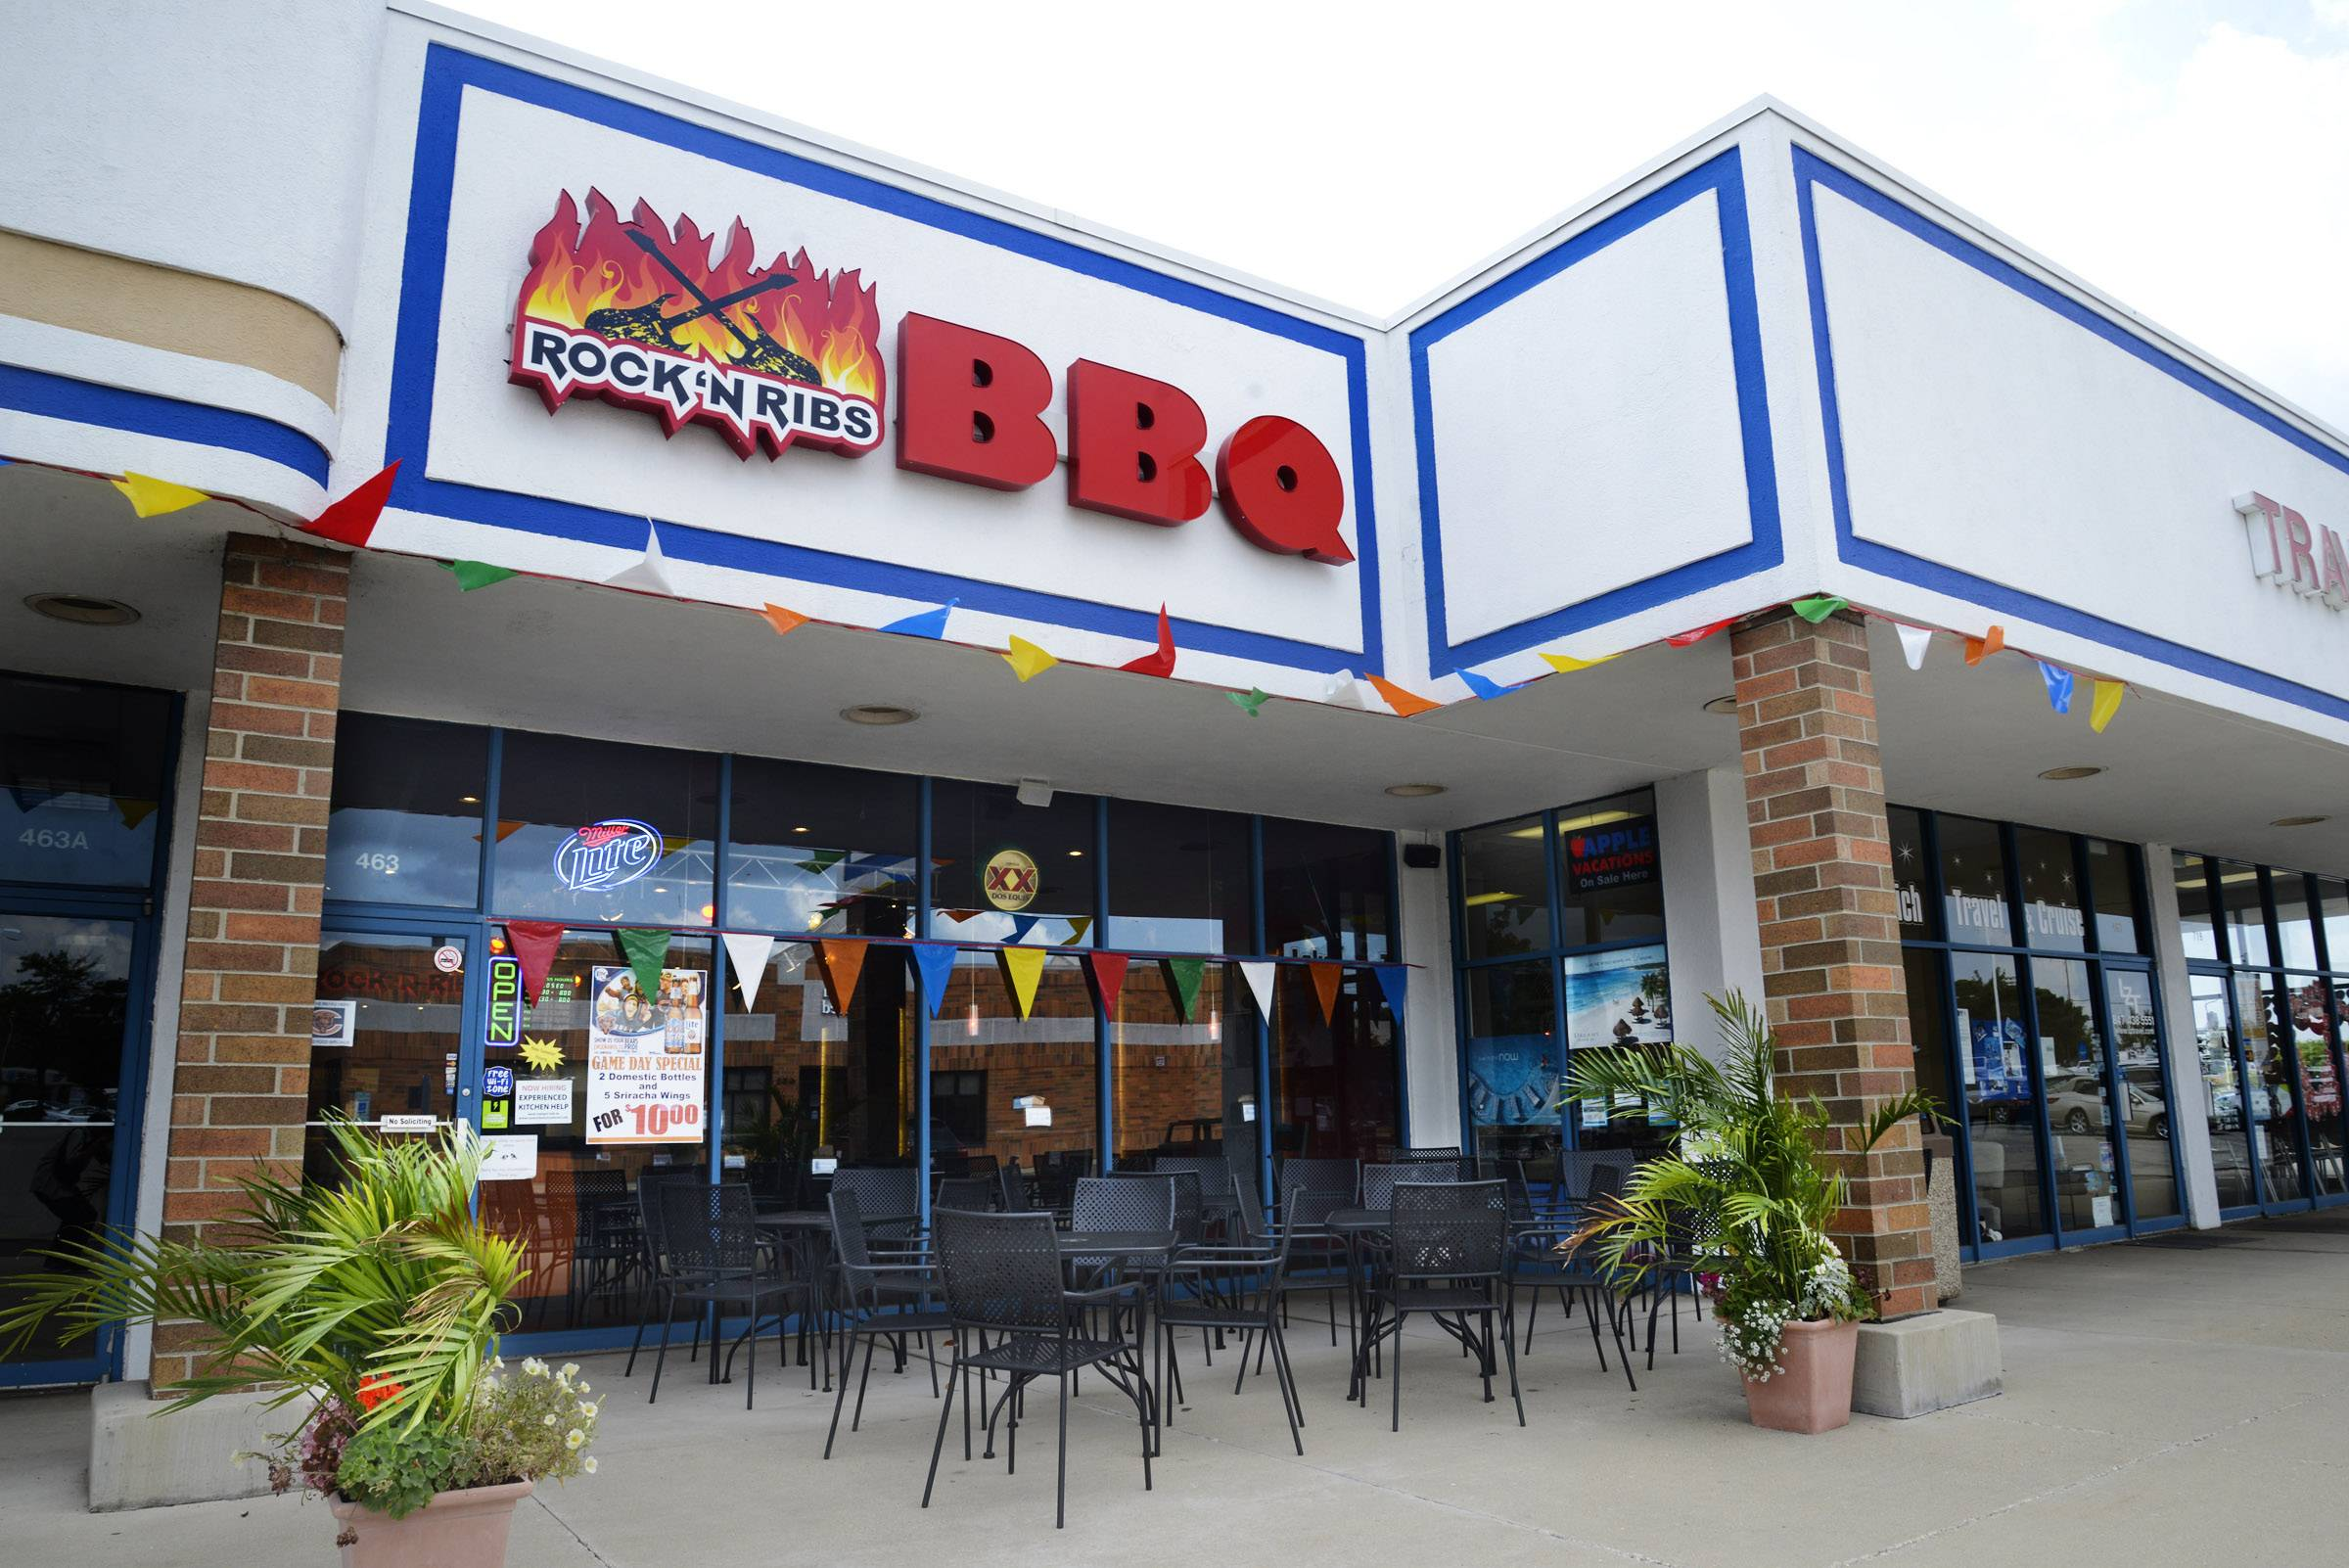 Rock 'n Ribs opened on South Rand Road in Lake Zurich earlier this year.